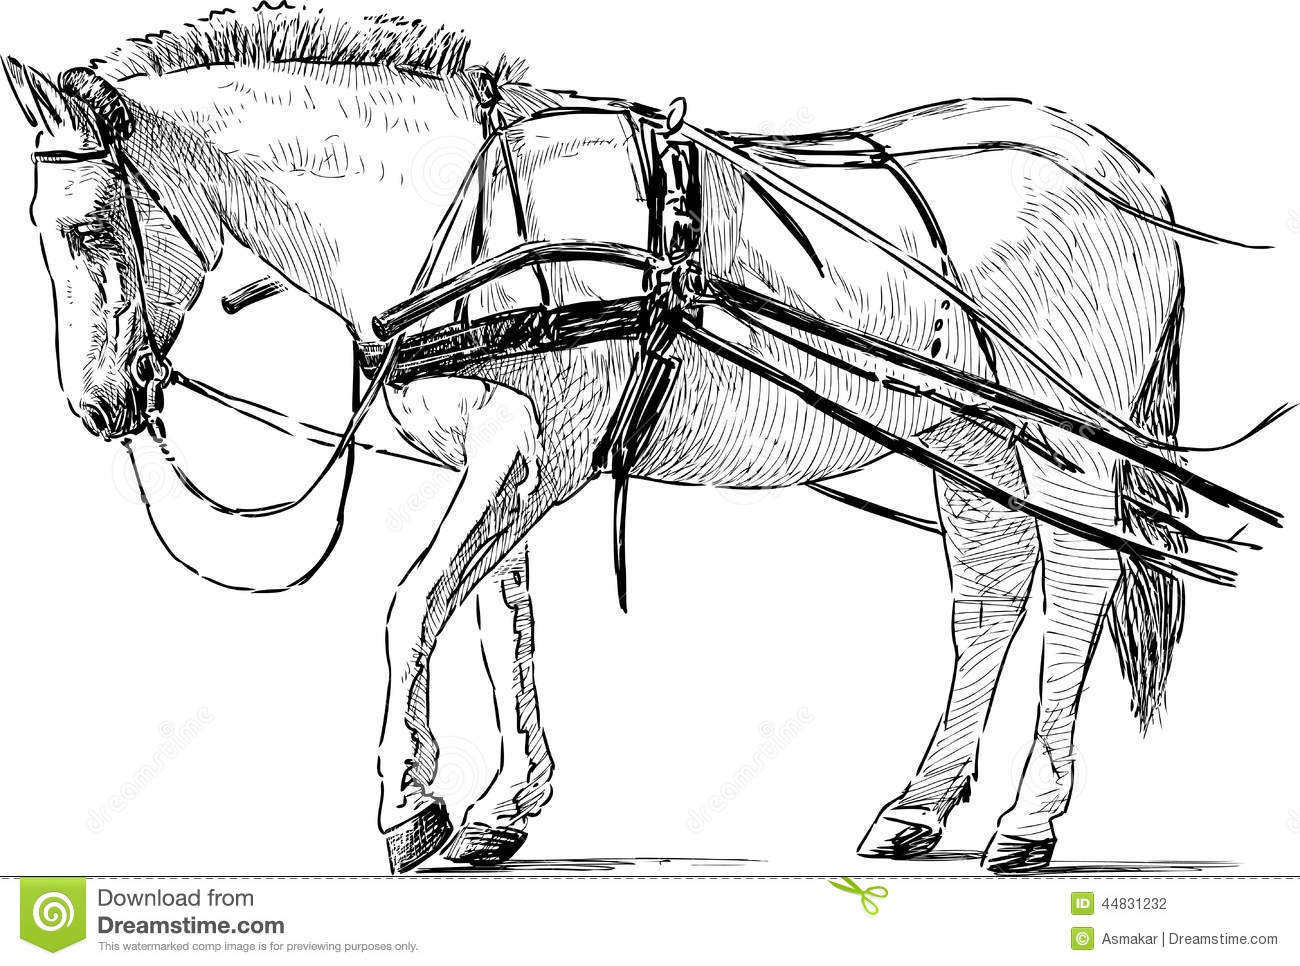 White horse in the harness stock vector. Illustration of